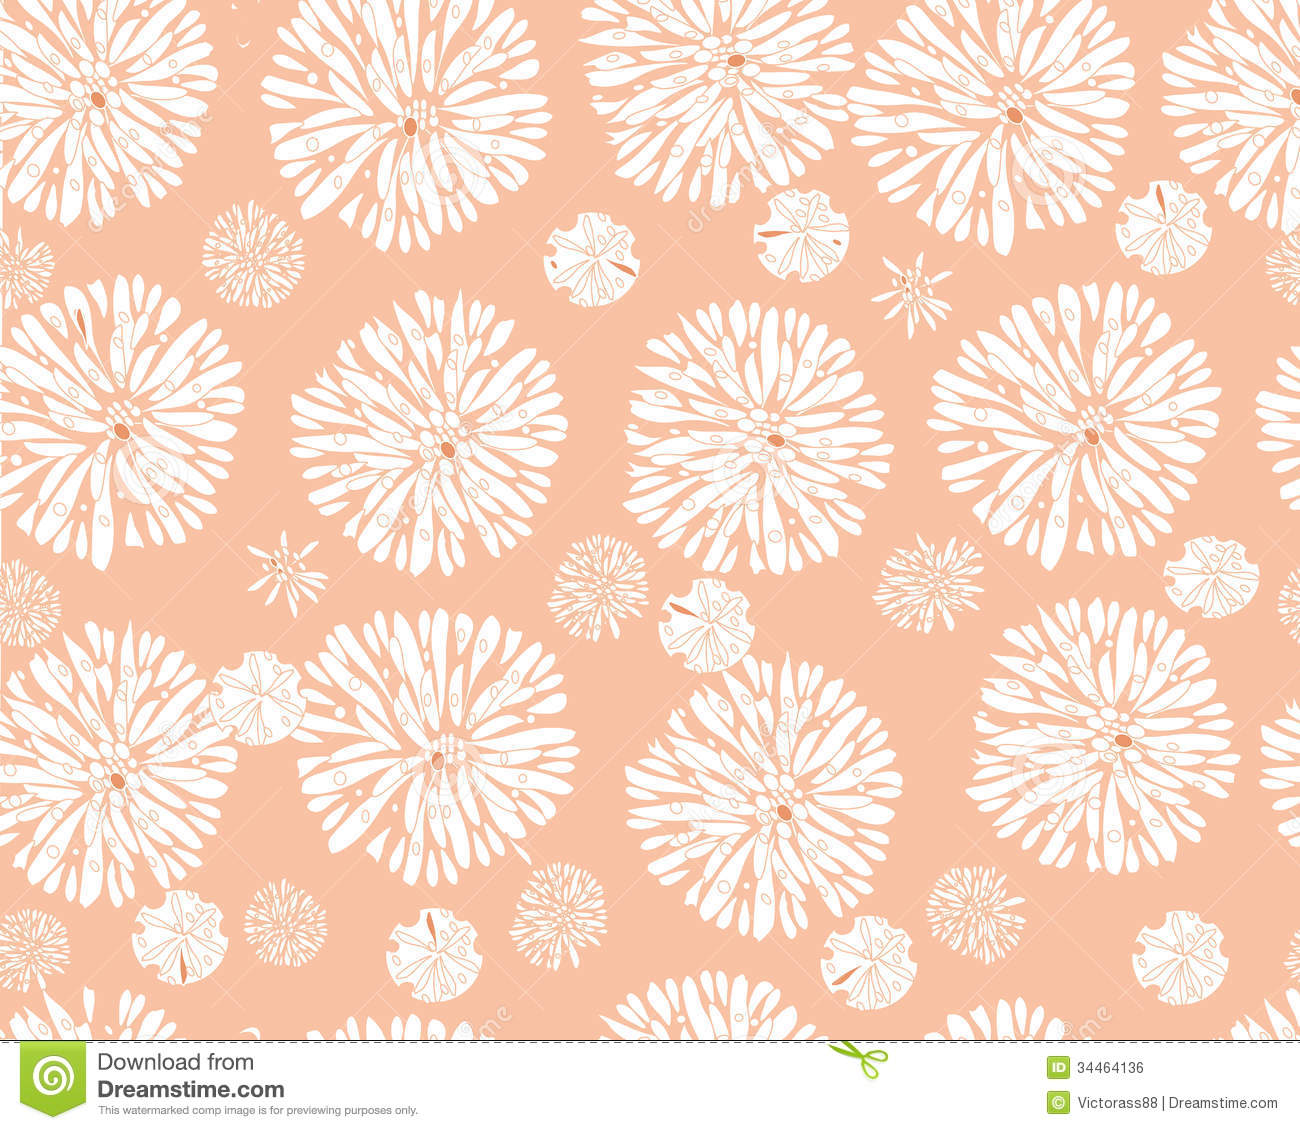 Free abstract floral pattern attentively would